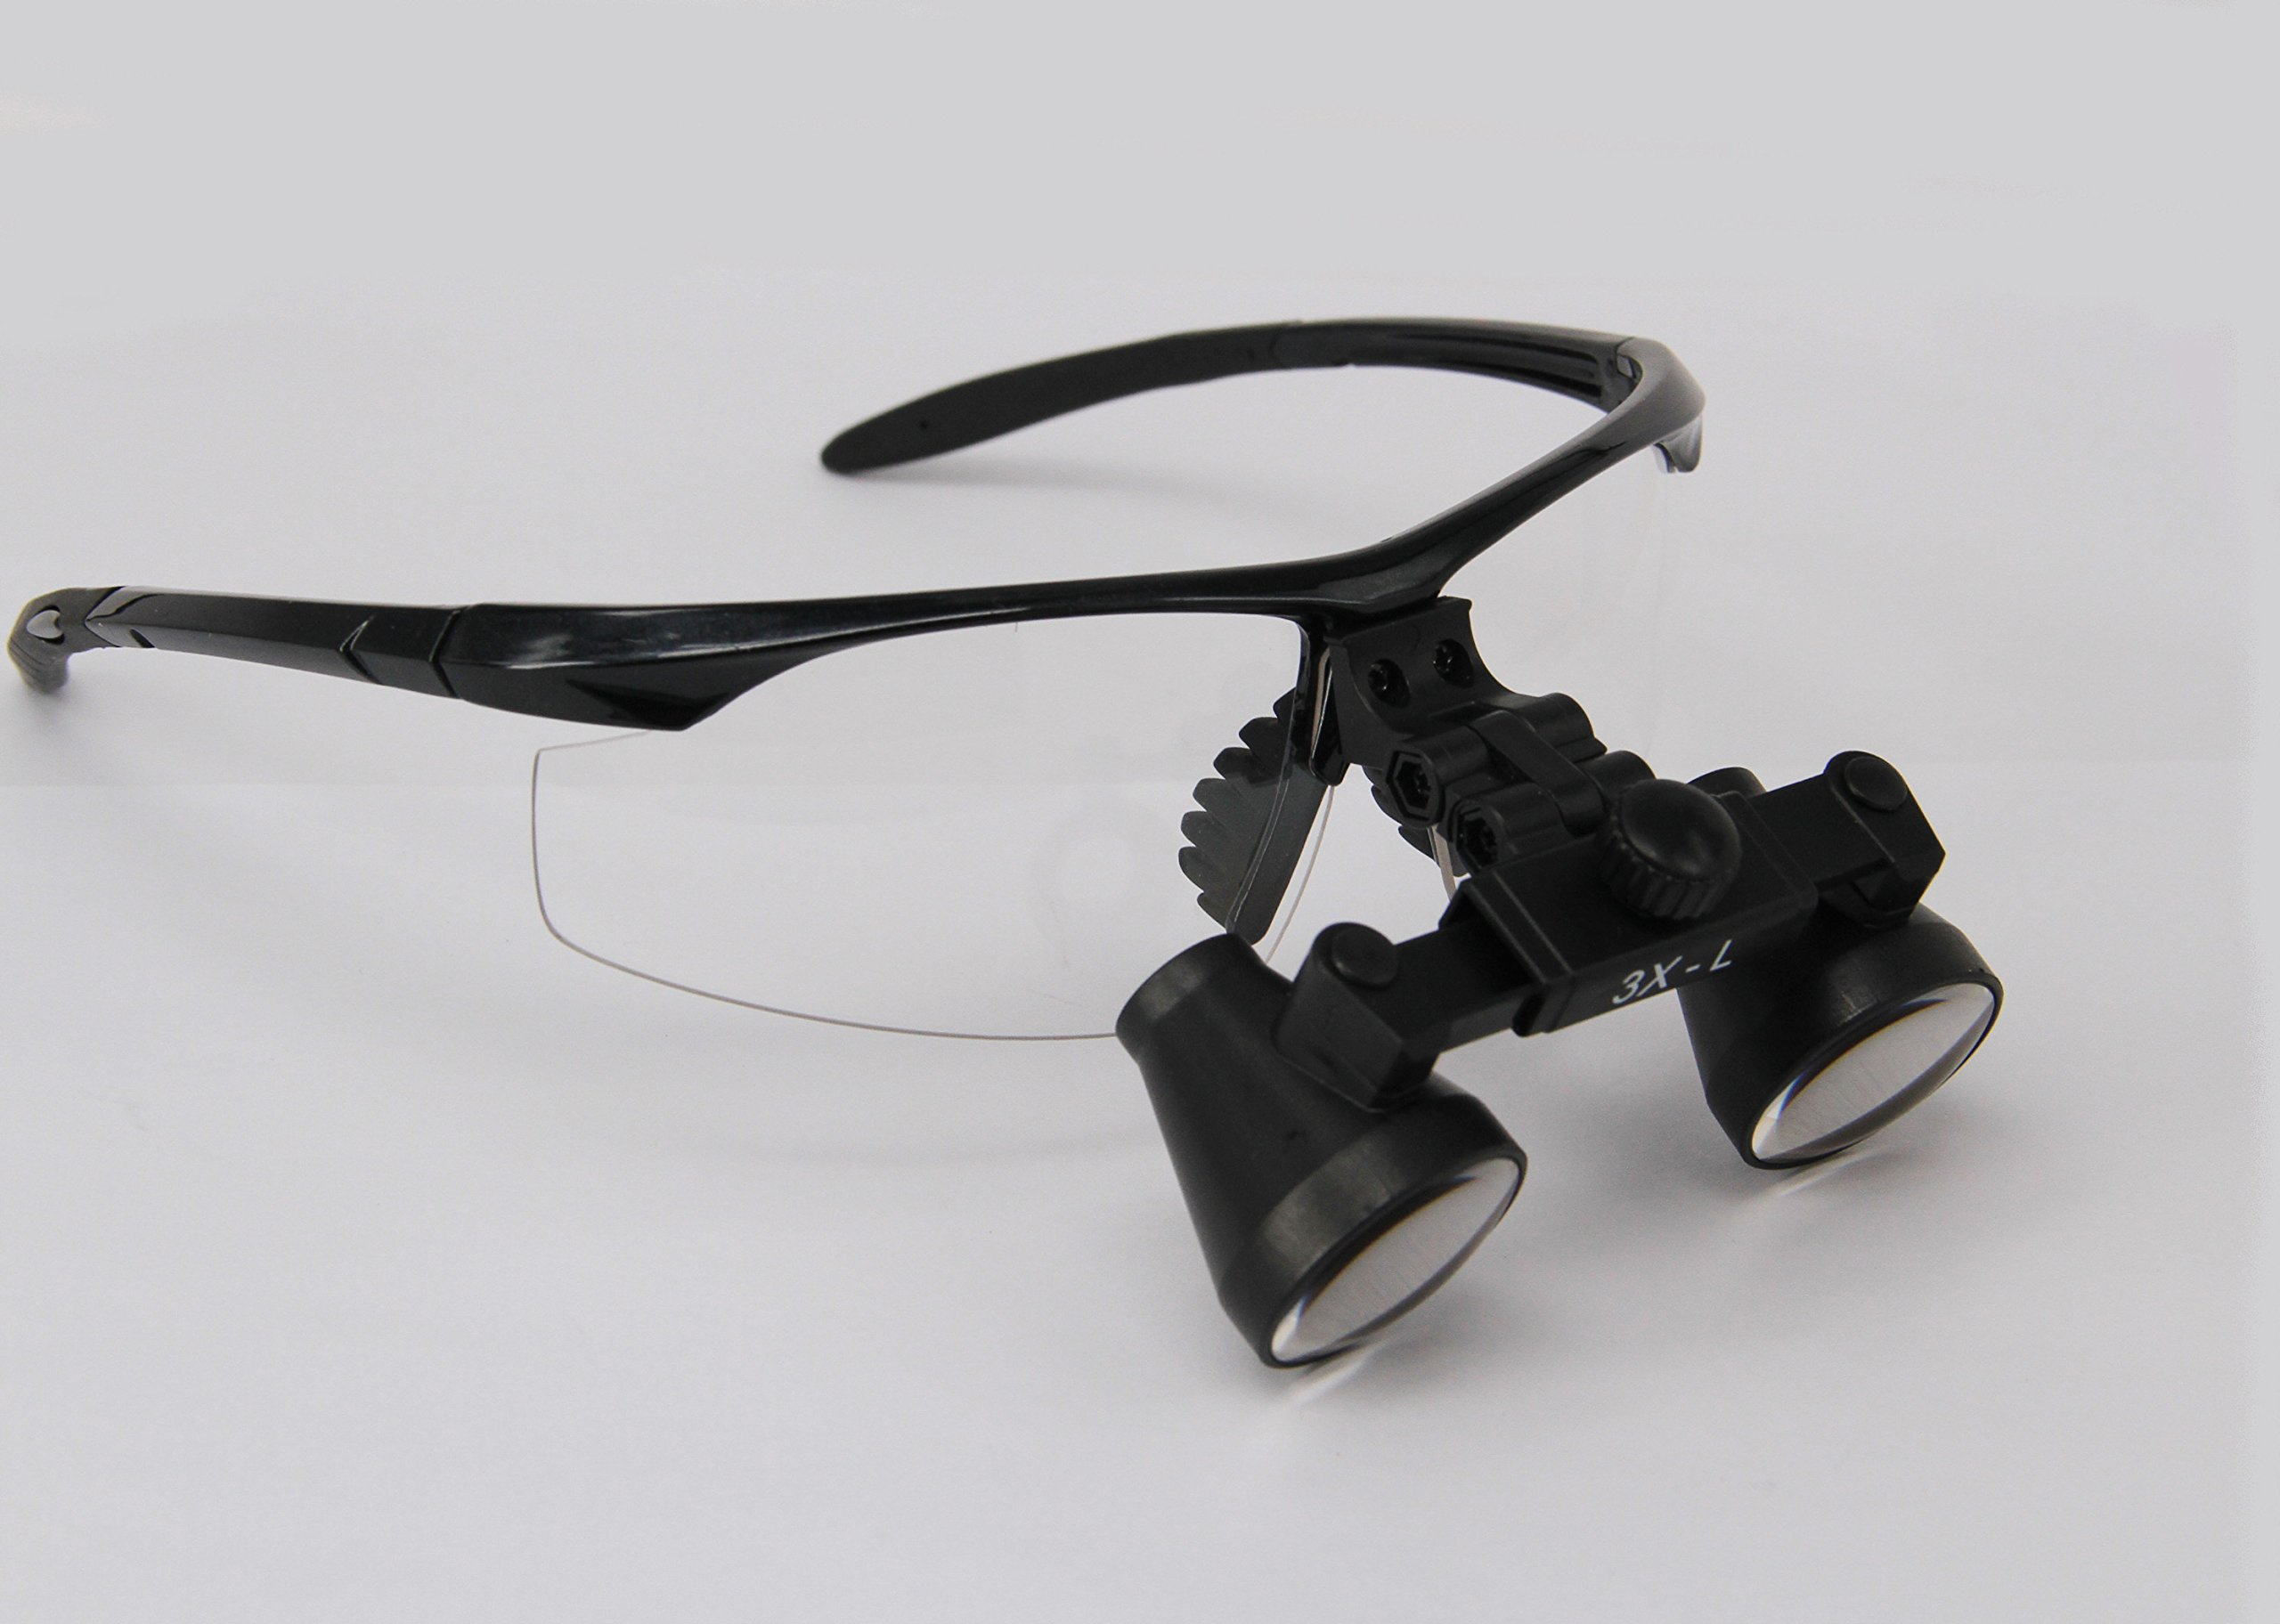 Ymarda Optics hot selling 3.0X Binocular Loupes Surgical Loupes (Black frame 3.0x Magnifier with different working distances) (R (360-460mm) with Black frame)